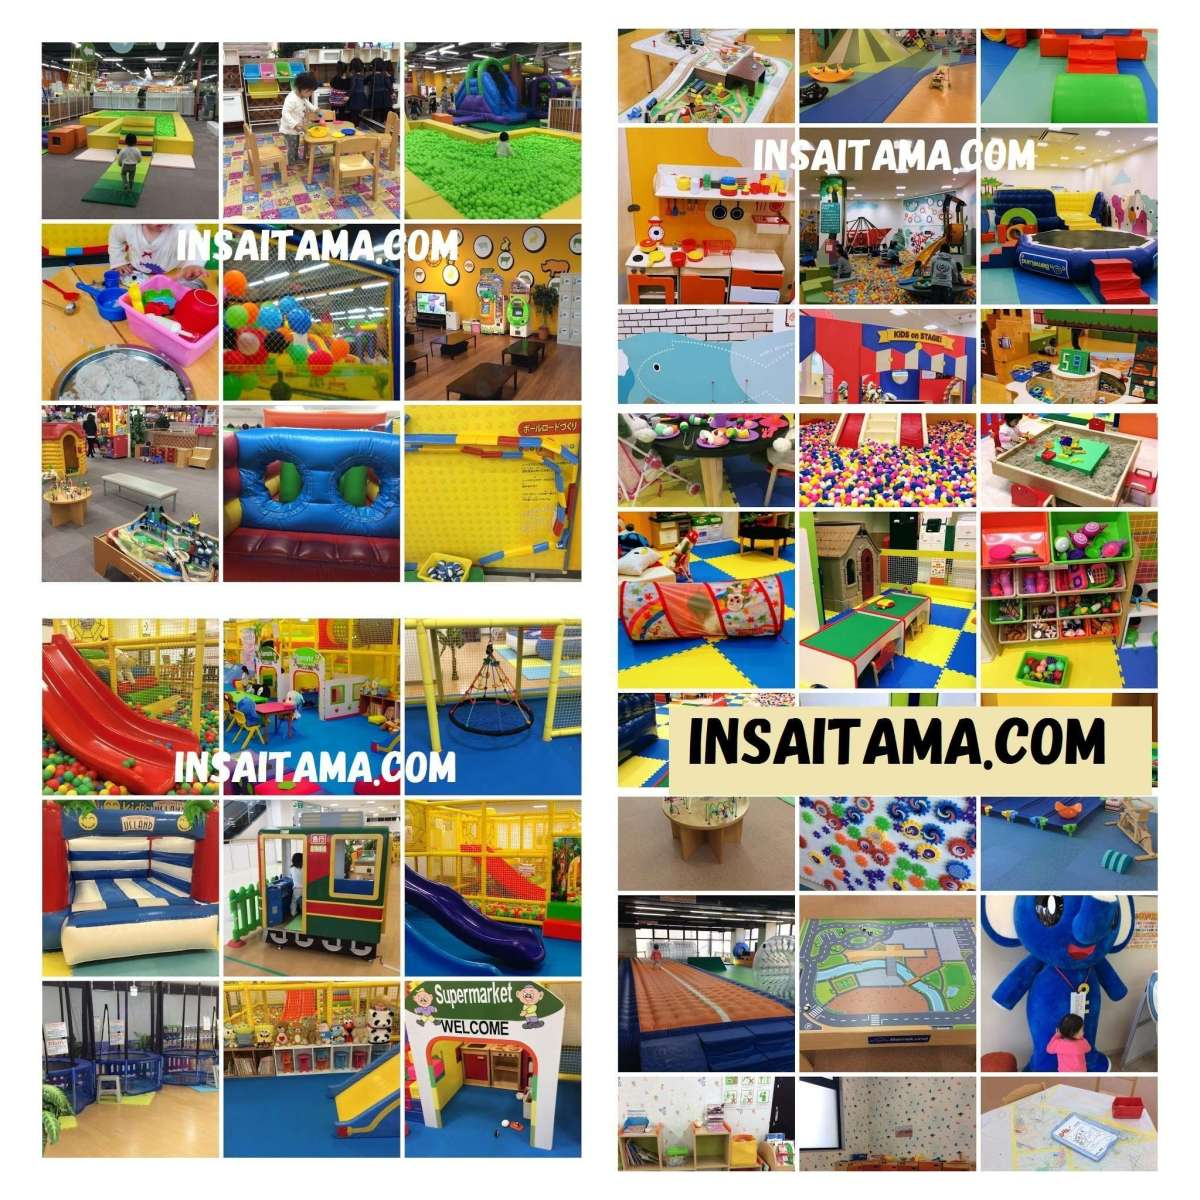 >60 Privately Run Indoor Play / Fun / Amusement Centers in Saitama